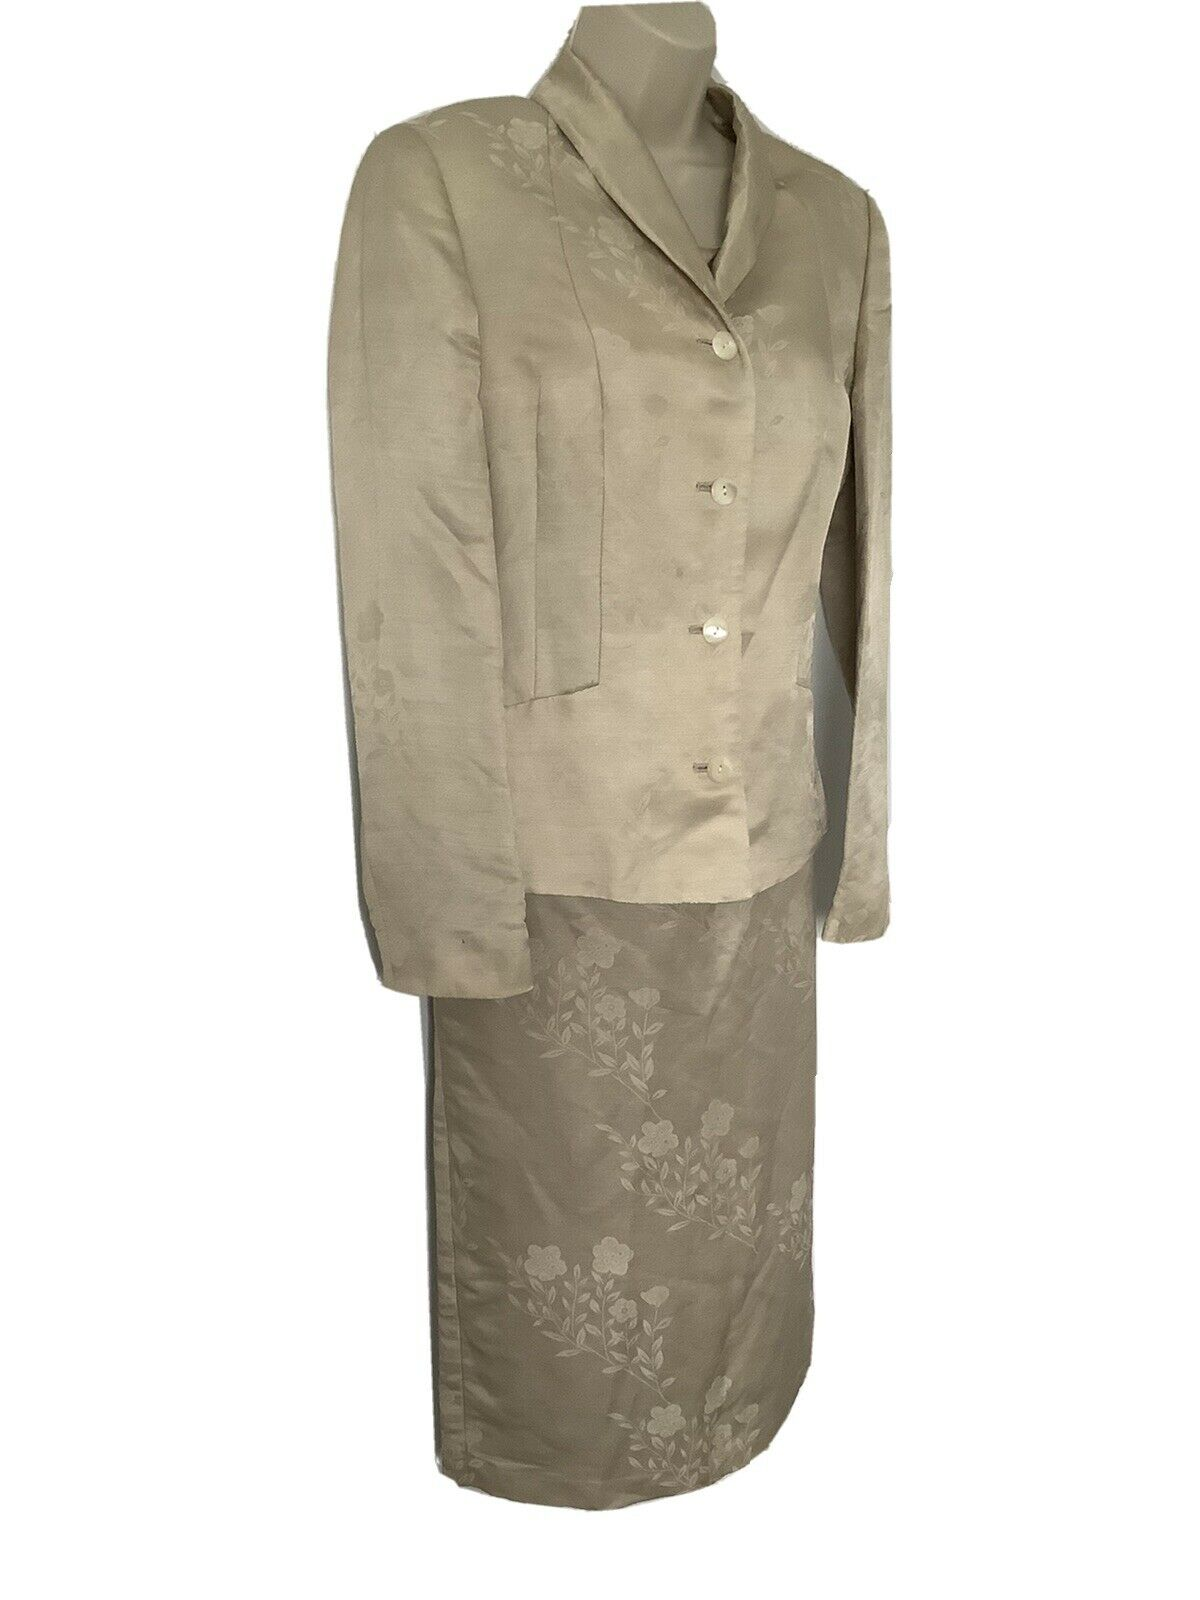 Vintage Laura Ashley Silk Mother Of The Bride Outfit Size 12 Gold Floral